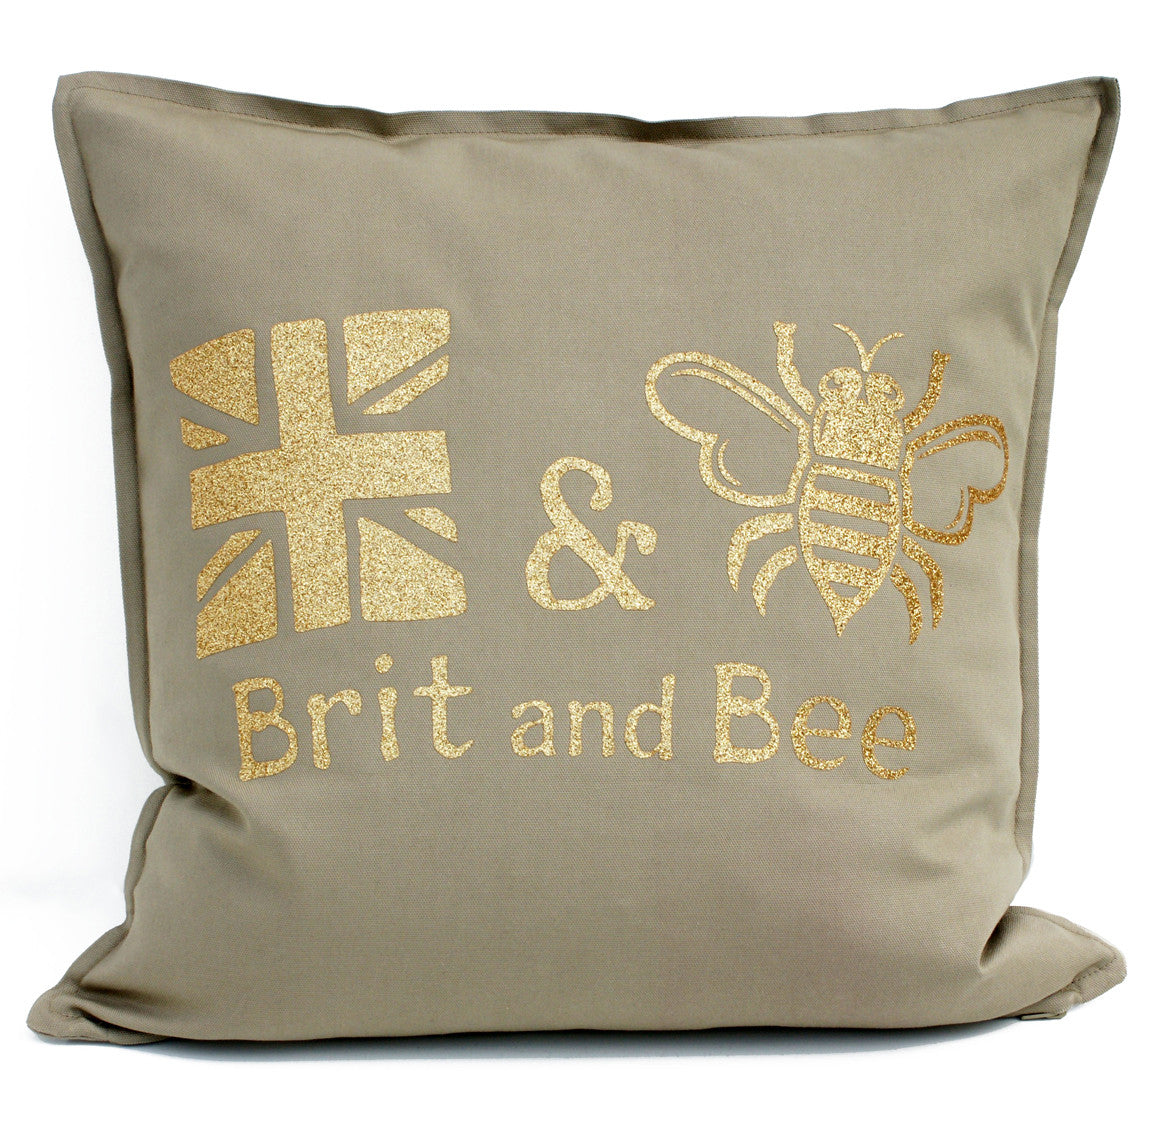 Brit and Bee Throw Pillow